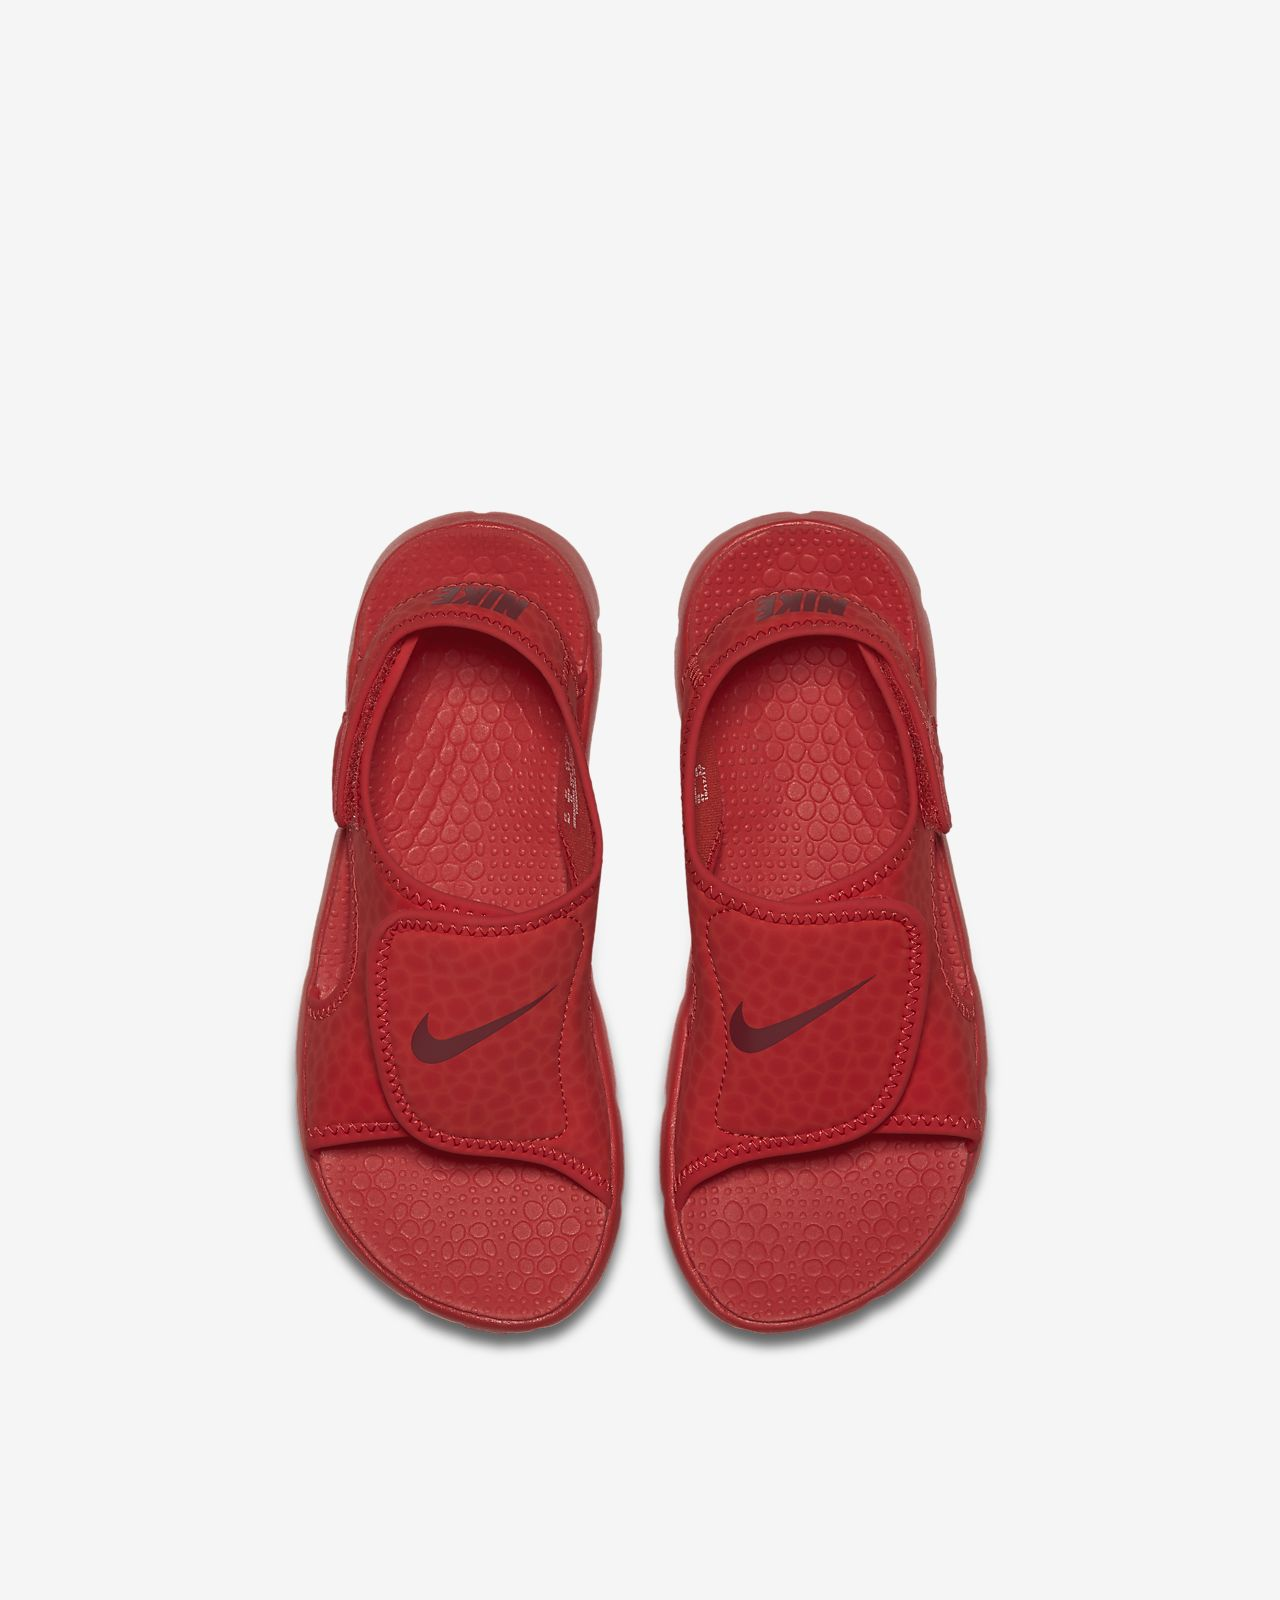 92374a14d485 ... italy nike sunray adjust 4 younger older kids sandal d4ef1 e6223  clearance ...